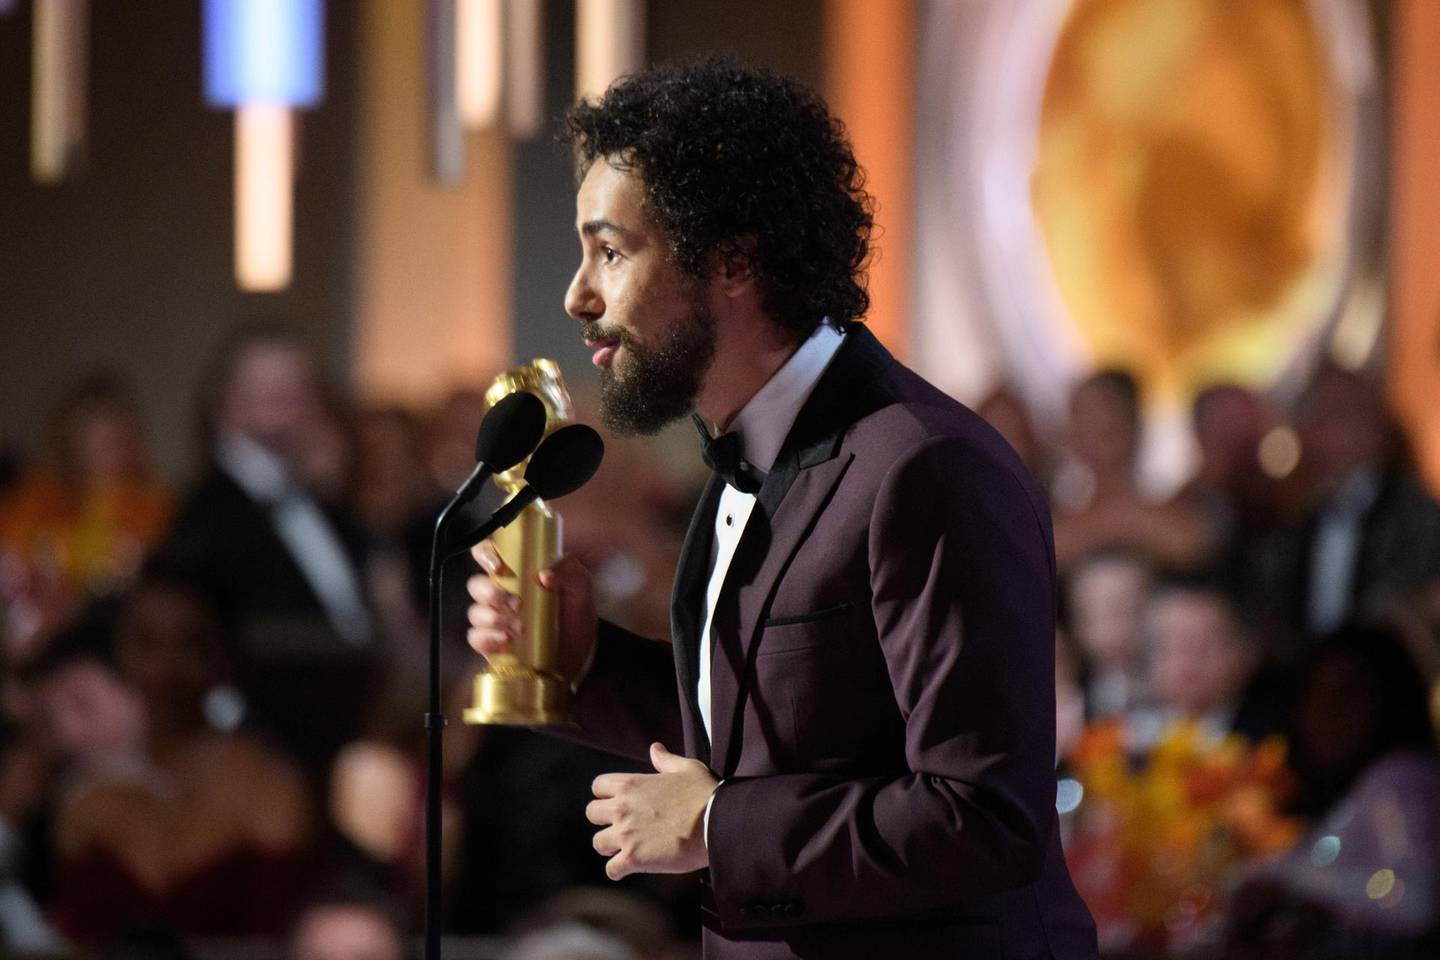 epa08106122 A handout photo made available by the Hollywood Foreign Press Association shows US comedian Ramy Youssef accepting the Golden Globe Award for Best Performance by an Actor in a Television Series - Musical or Comedy for his role in Ramy on stage during the 77th annual Golden Globe Awards ceremony at the Beverly Hilton Hotel, in Beverly Hills, California, USA, 05 January 2020.  EPA/HFPA / HANDOUT ATTENTION EDITORS: IMAGE MAY ONLY BE USED UNALTERED, ONE TIME USE ONLY WITHIN 60 DAYS MANDATORY CREDIT HANDOUT EDITORIAL USE ONLY/NO SALES